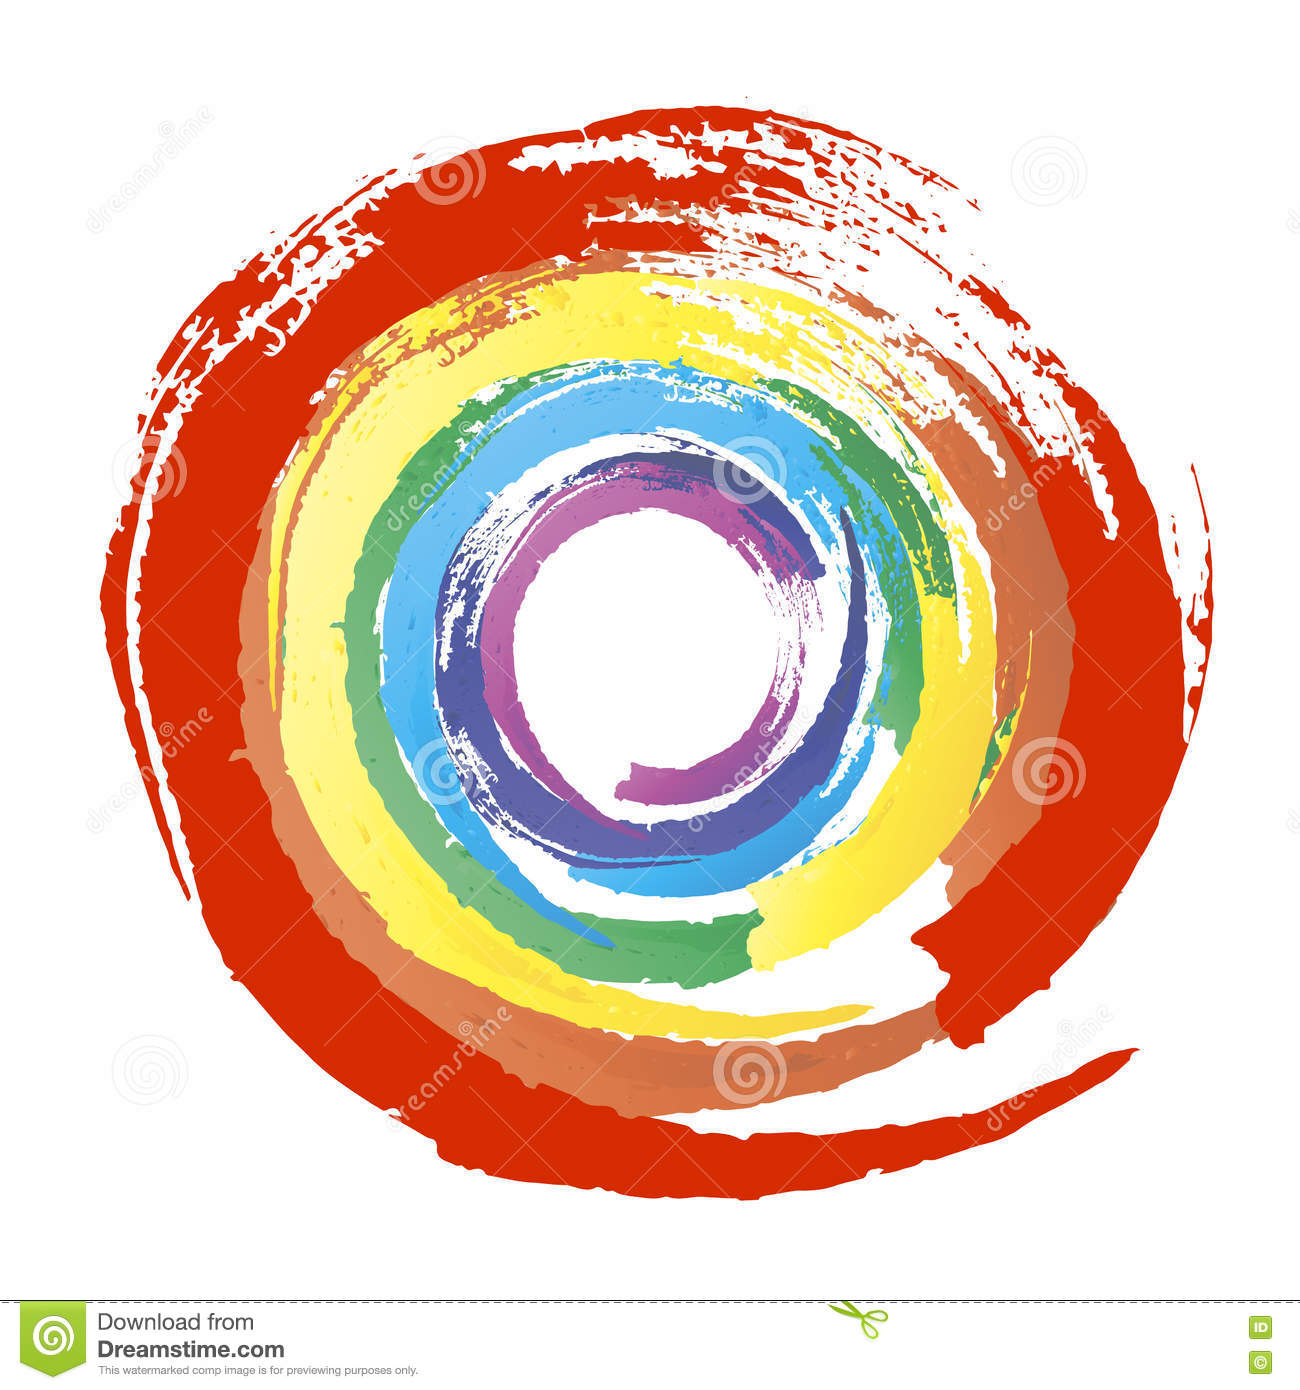 Multicolor Grunge Circle Stock Vector  Image 74247184